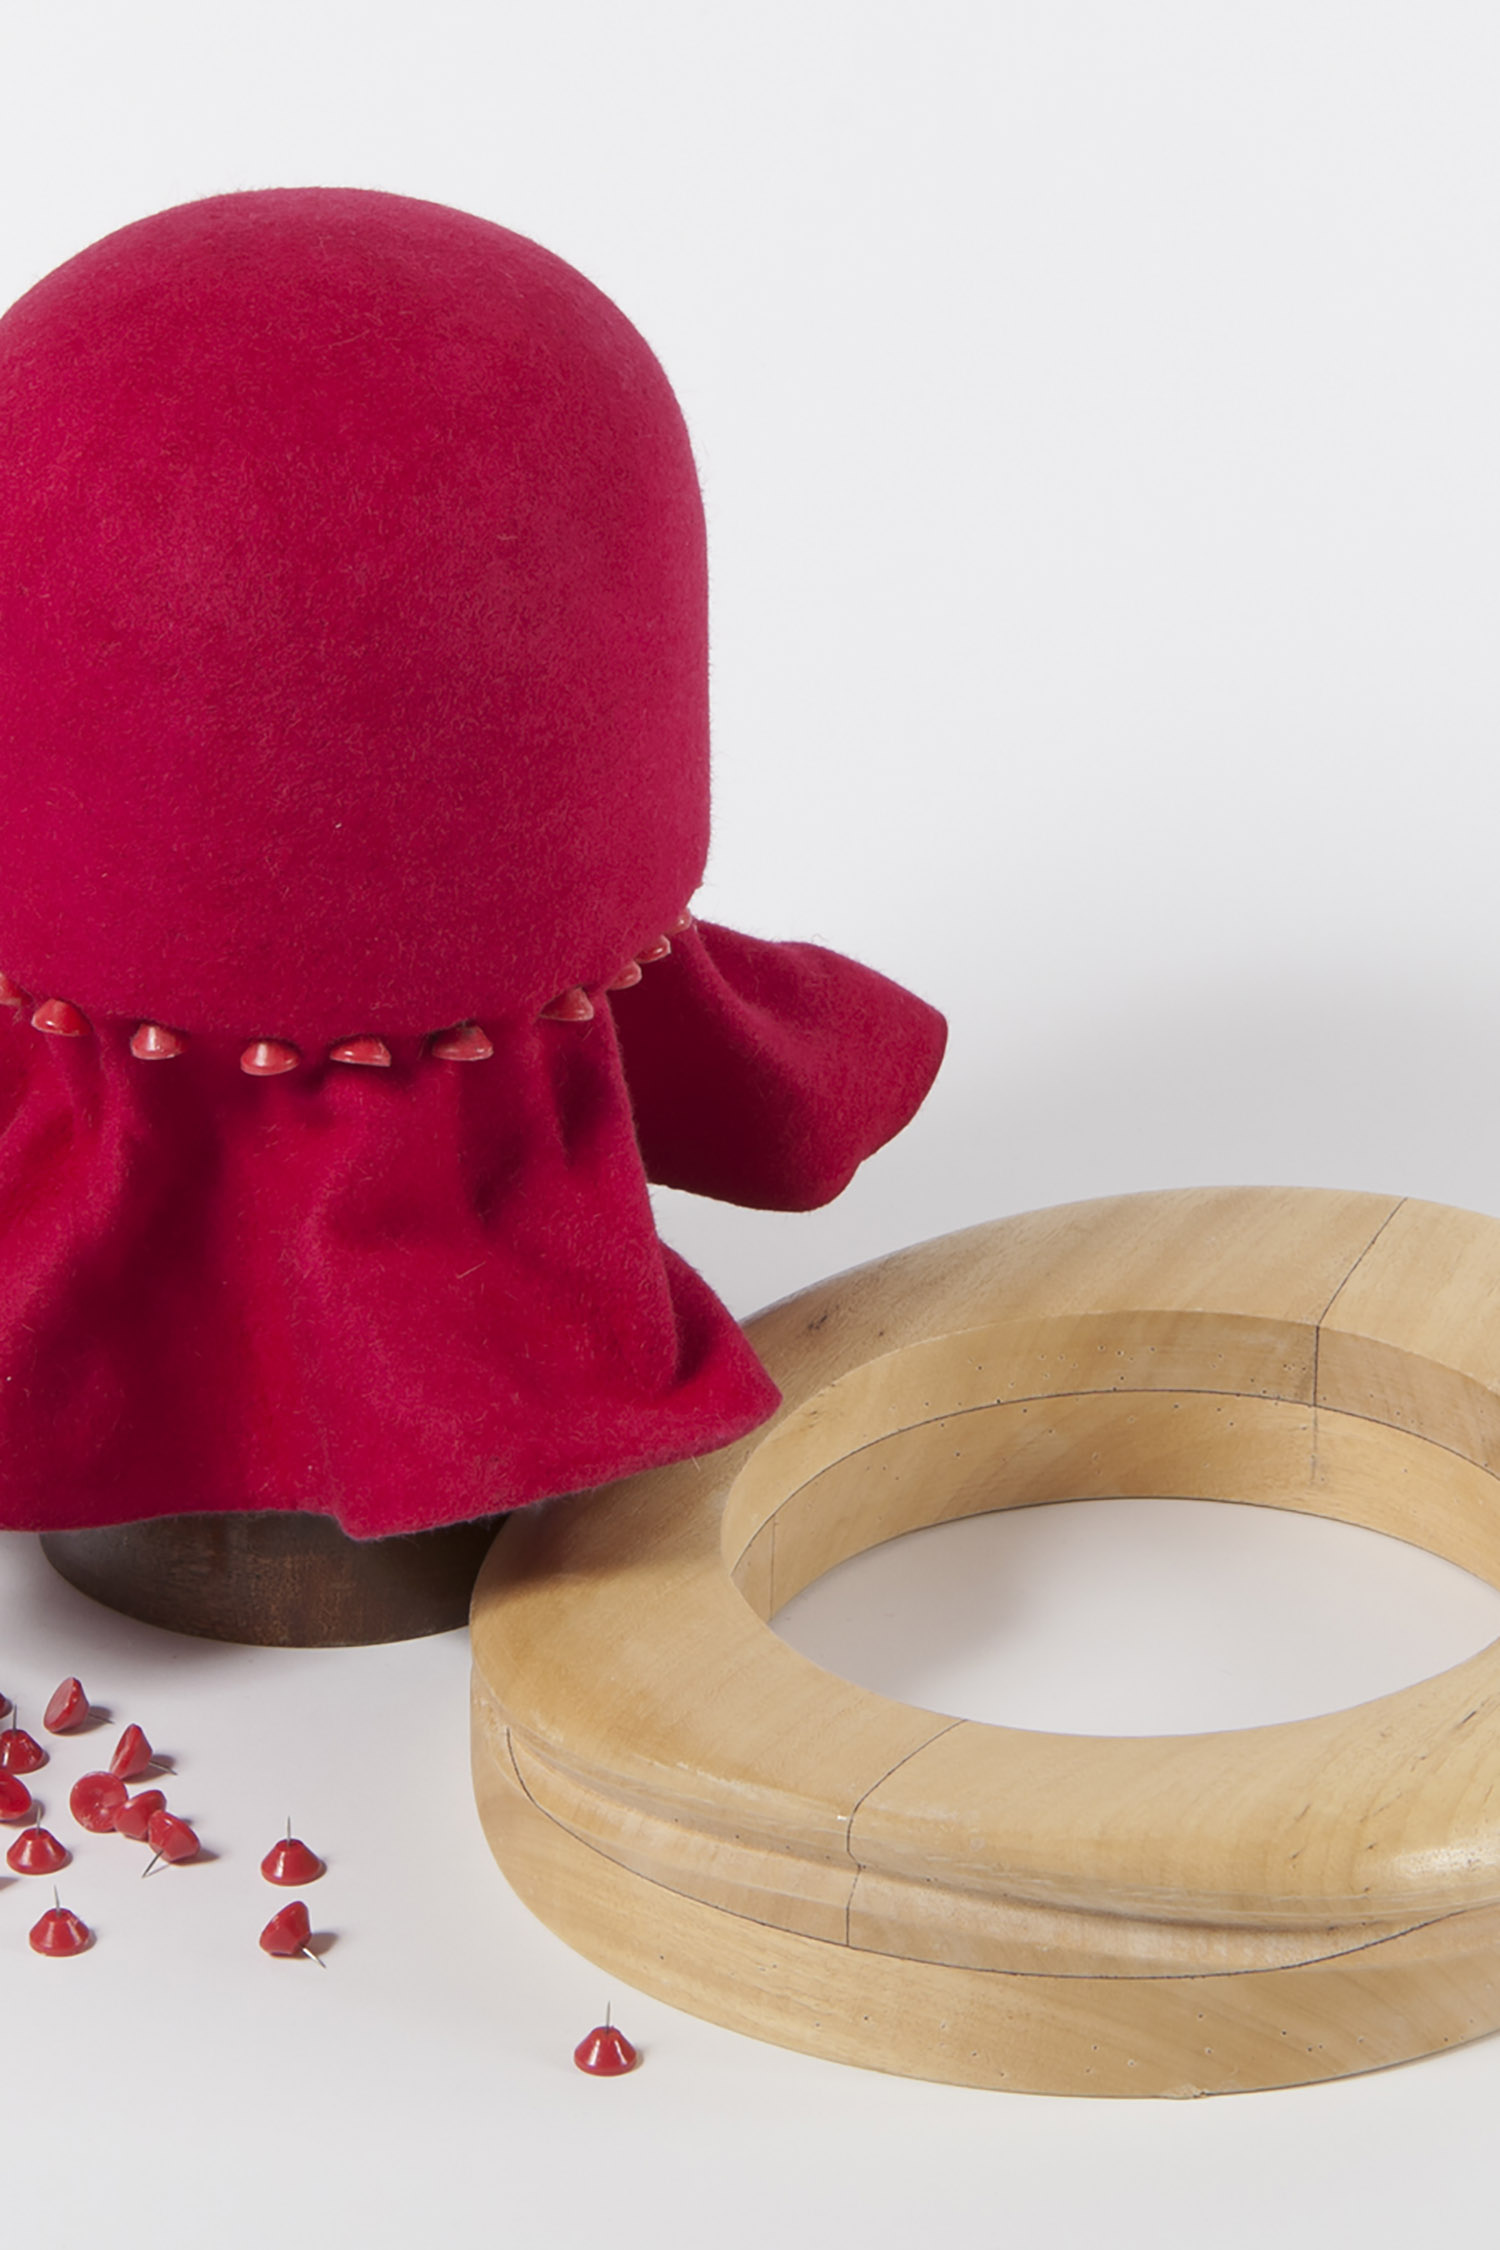 BEGINNER'S MILLINERY - FELT HATS :   2 day course